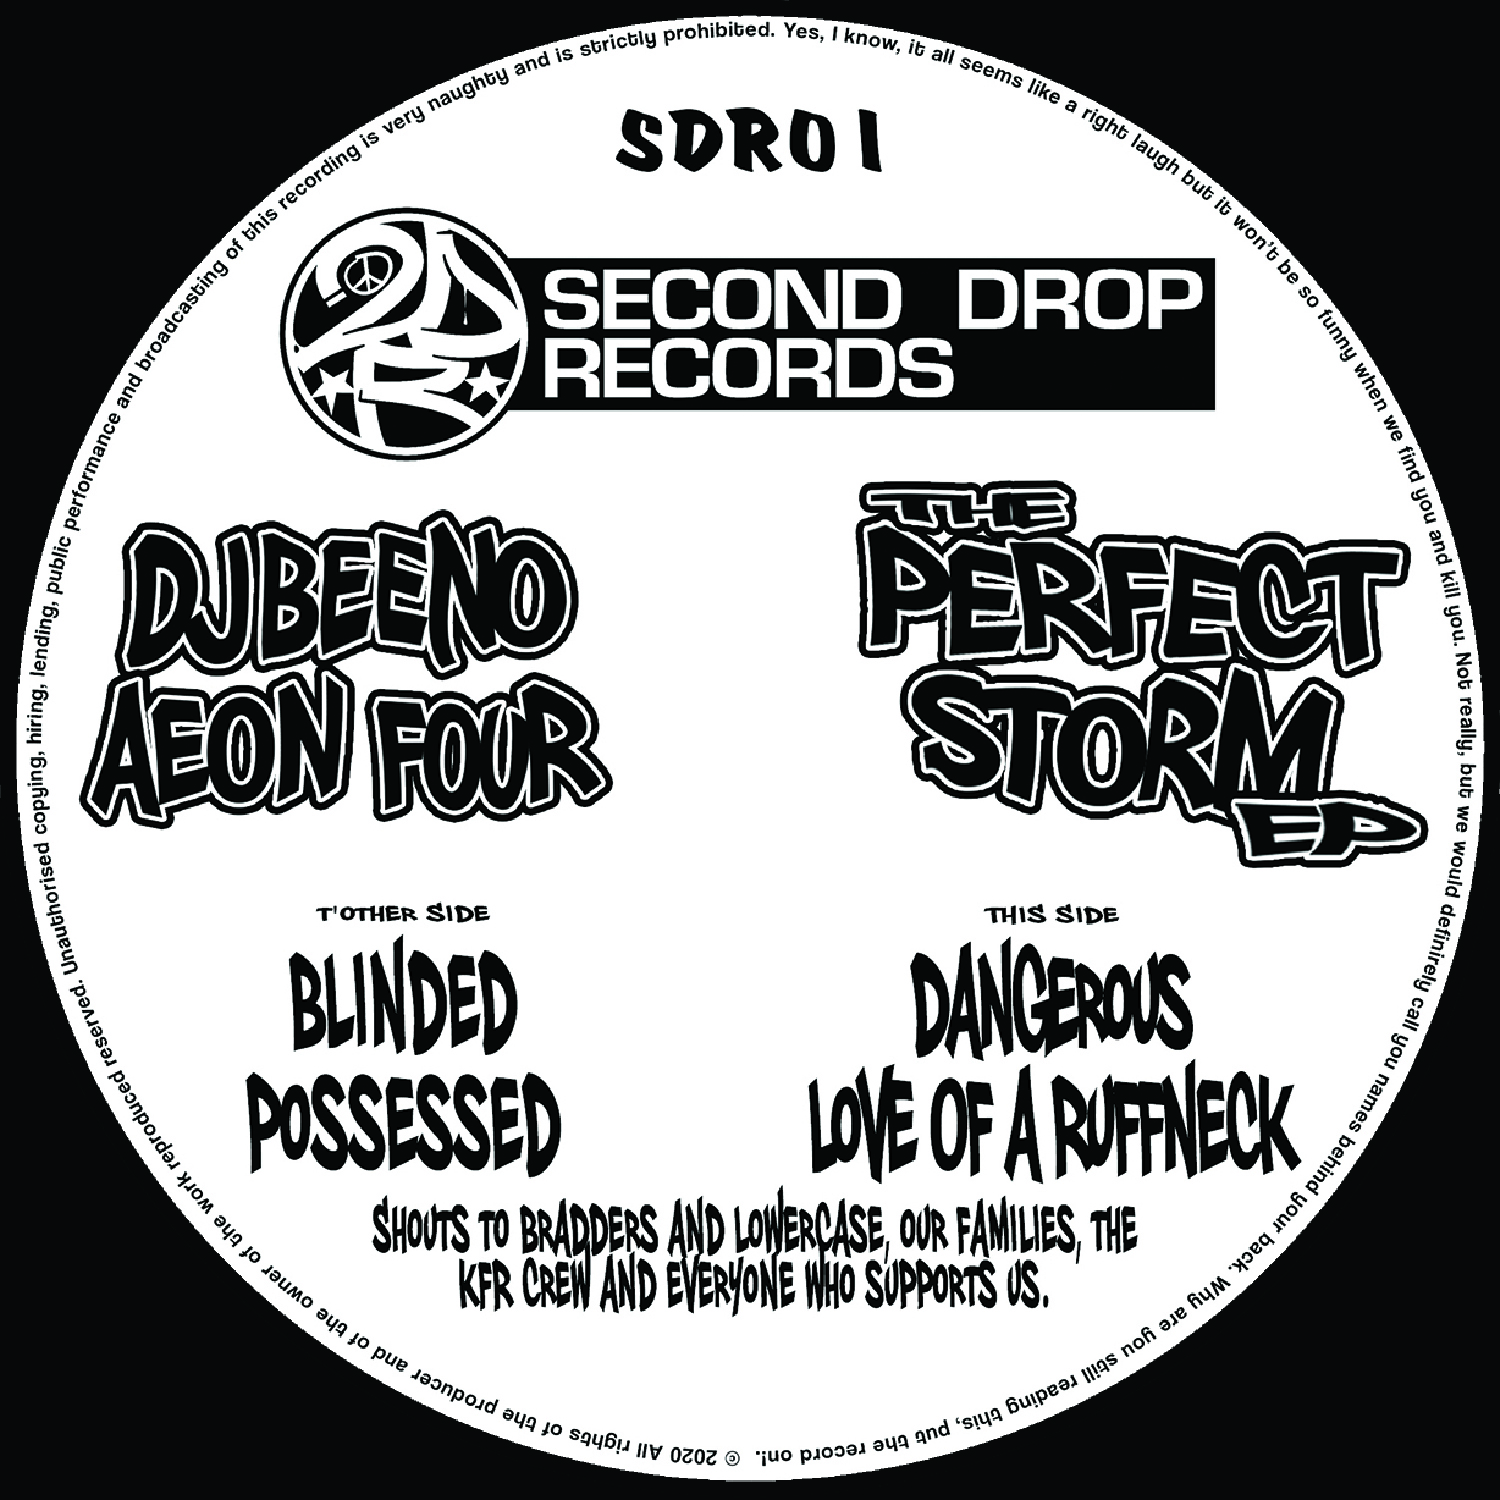 "[SDR01] Dj Beeno & Aeon Four - The Perfect Storm Ep (12"" Vinyl + Digital)"